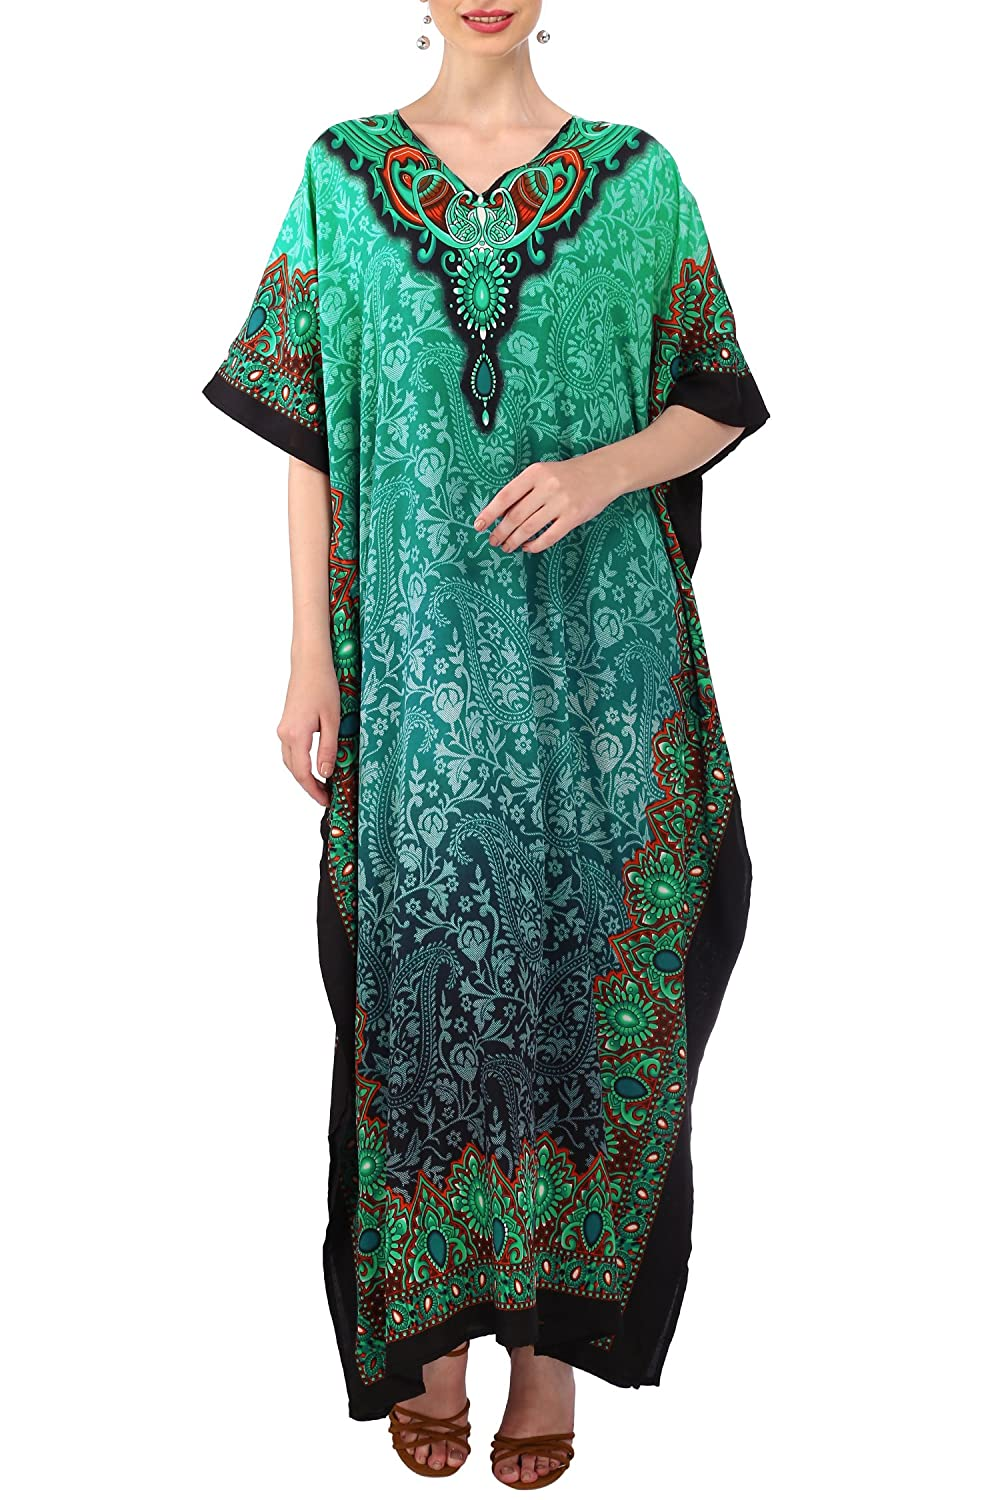 Cottagecore Dresses Aesthetic, Granny, Vintage Miss Lavish London Ladies Kaftans Kimono Maxi Style Dresses Suiting Teens to Adult Women in Regular to Plus Size $17.99 AT vintagedancer.com